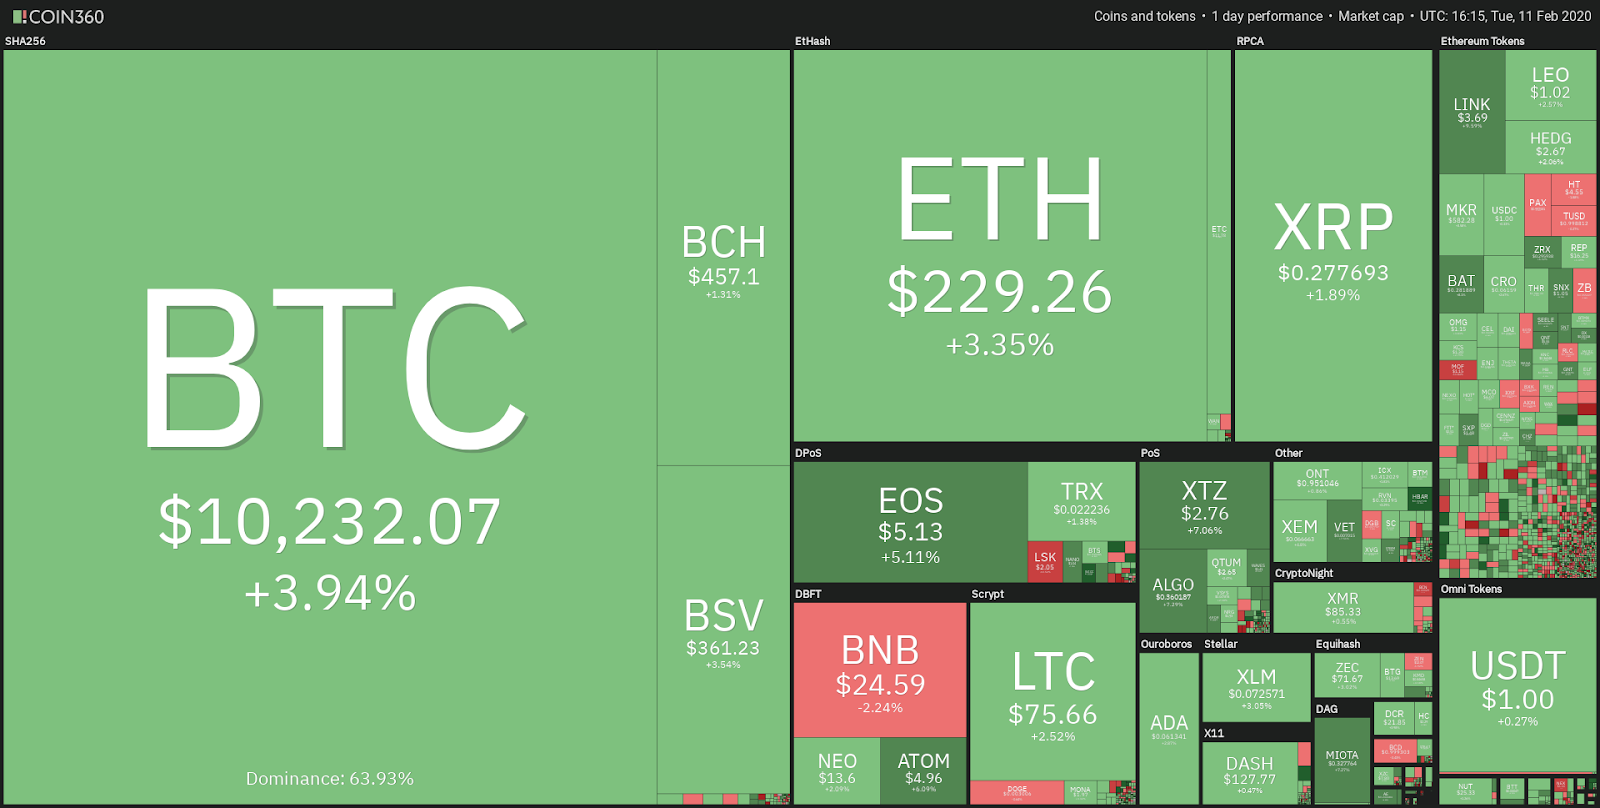 b689fbdab7c85bc280b345ccd34208e9 - Bought the Dip? Bitcoin Price Rebounds Strongly With $11,000 in Sight